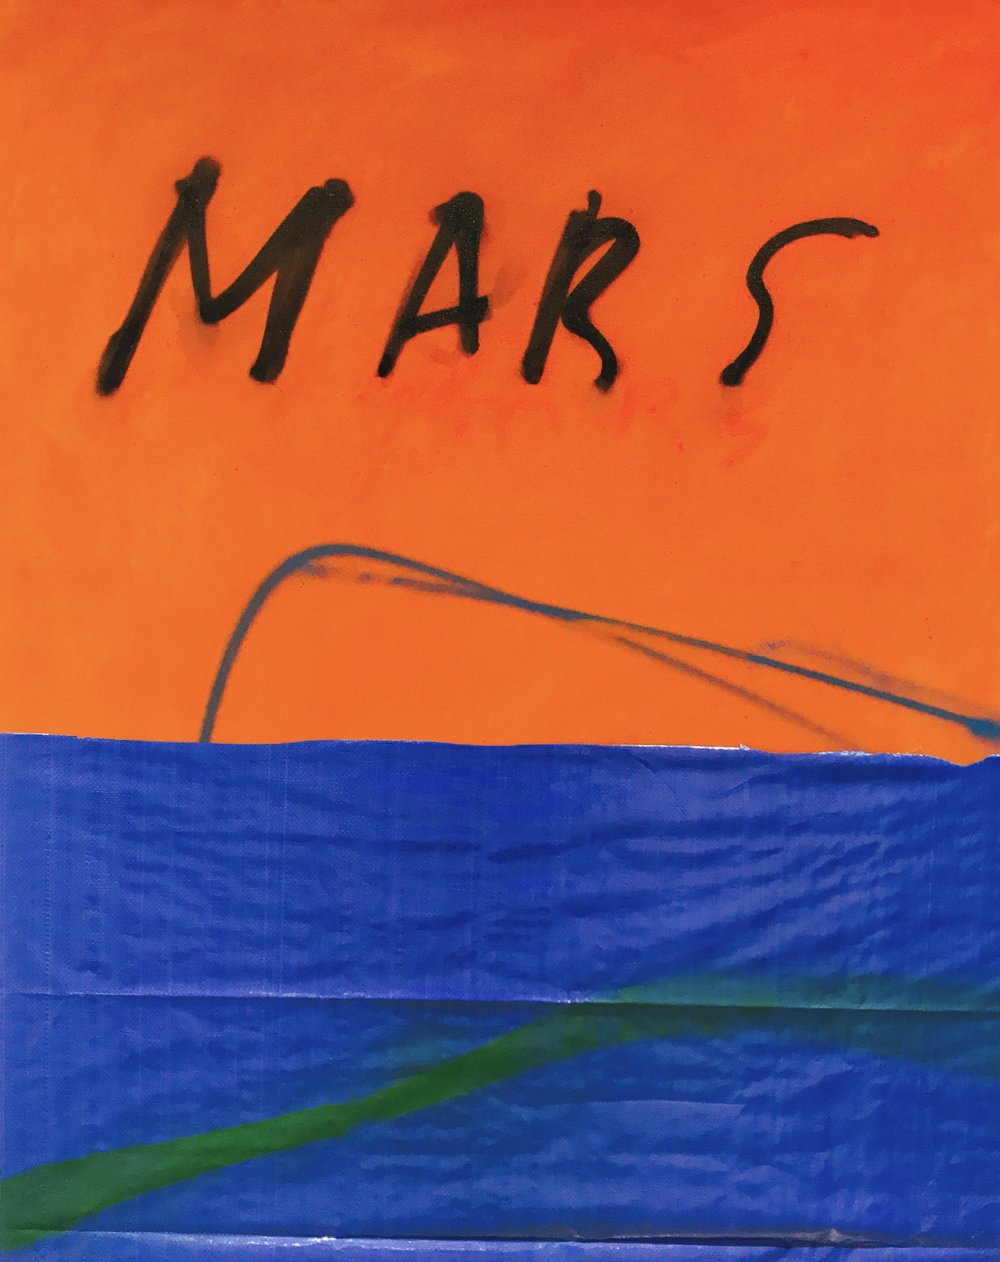 Mars, oil paint, oil stick and spray paint on canvas and synthetic fabric,52 x 42 in,2017   Price on request